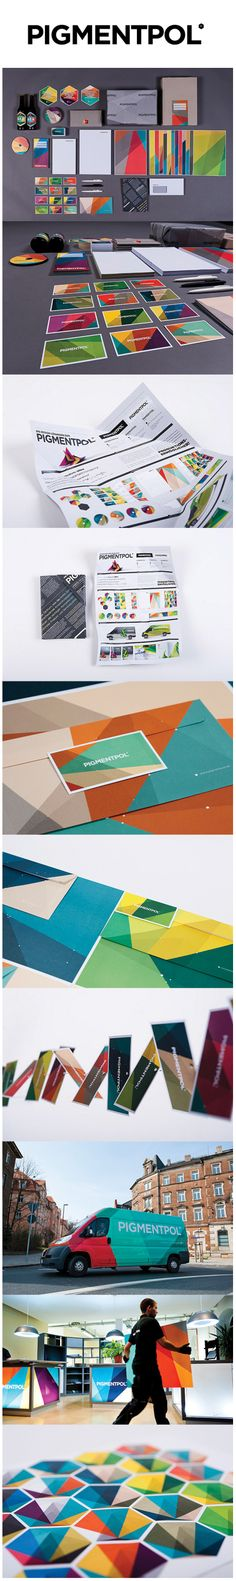 #branding loving all these colors